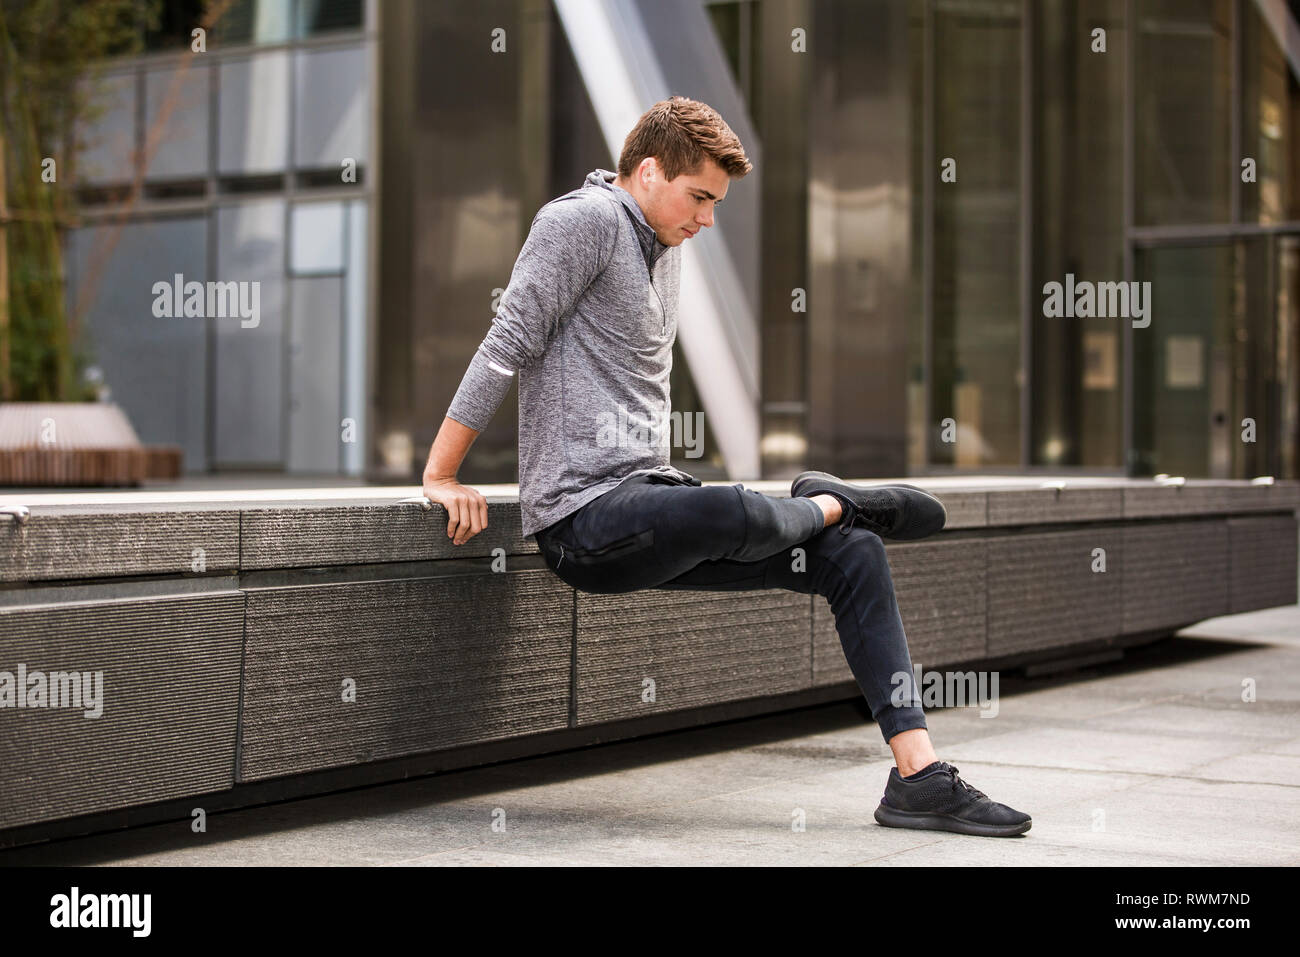 Young runner stretching on pavement, London, UK - Stock Image